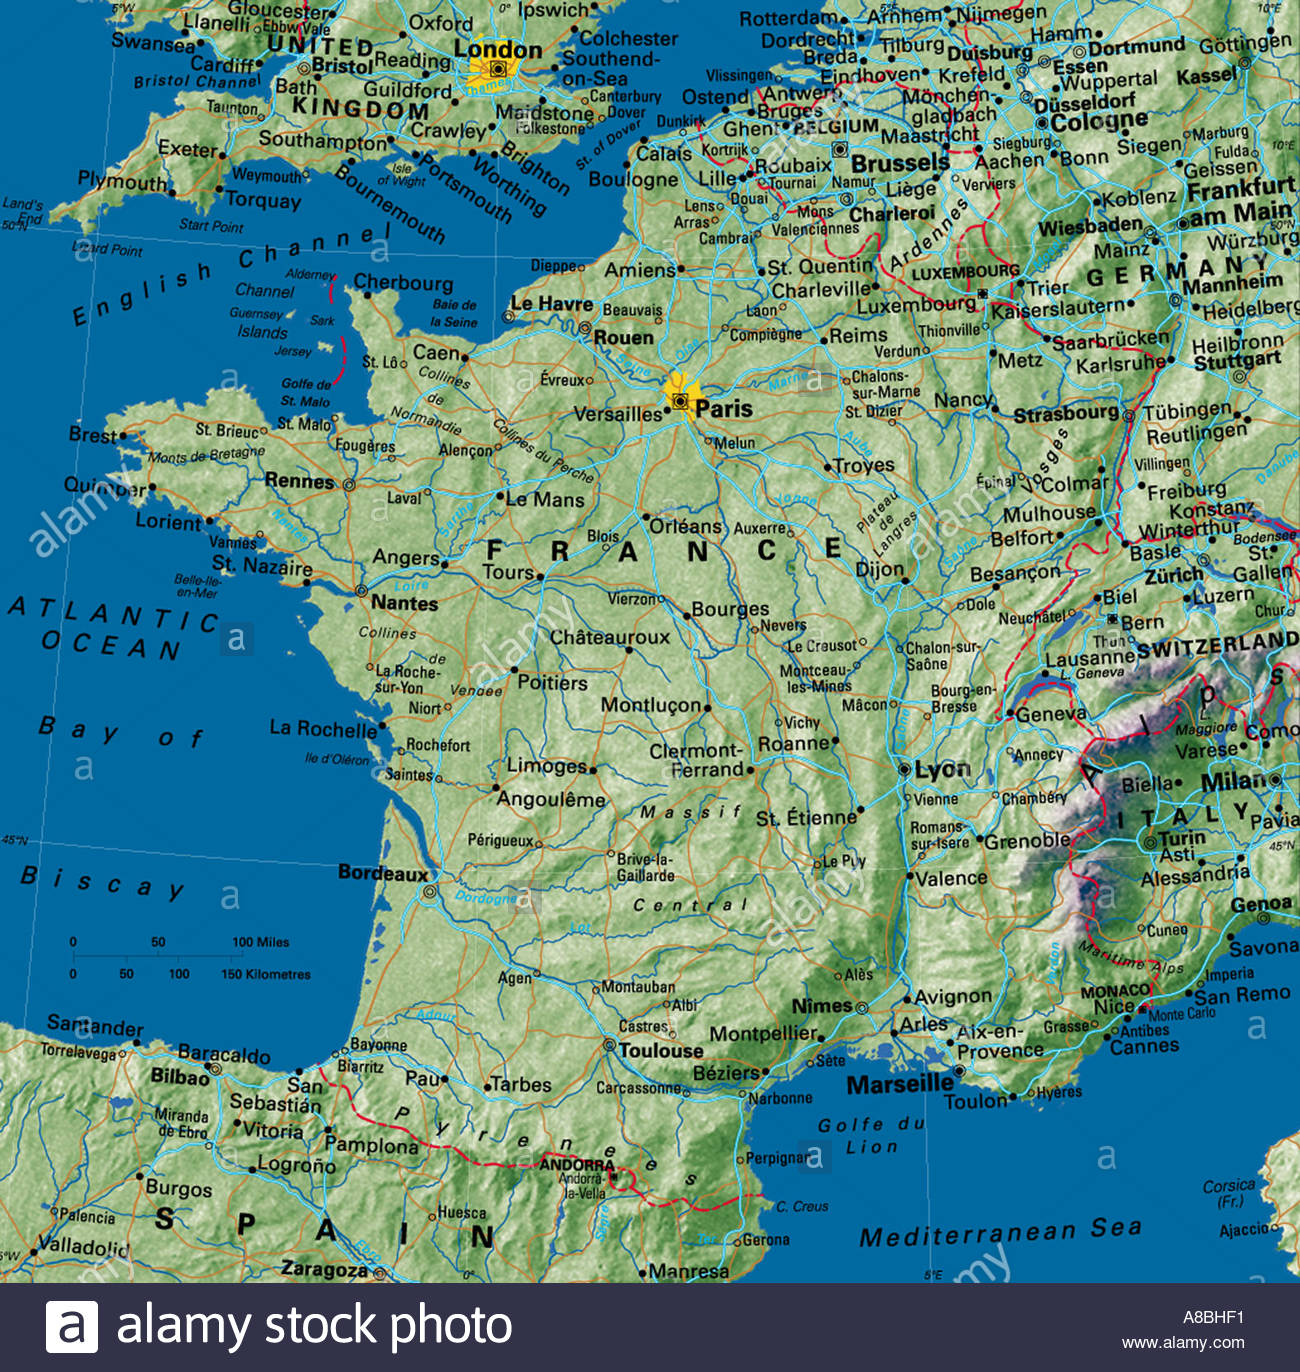 Map Of France And Europe.Map Maps Europe France Stock Photo 3933680 Alamy